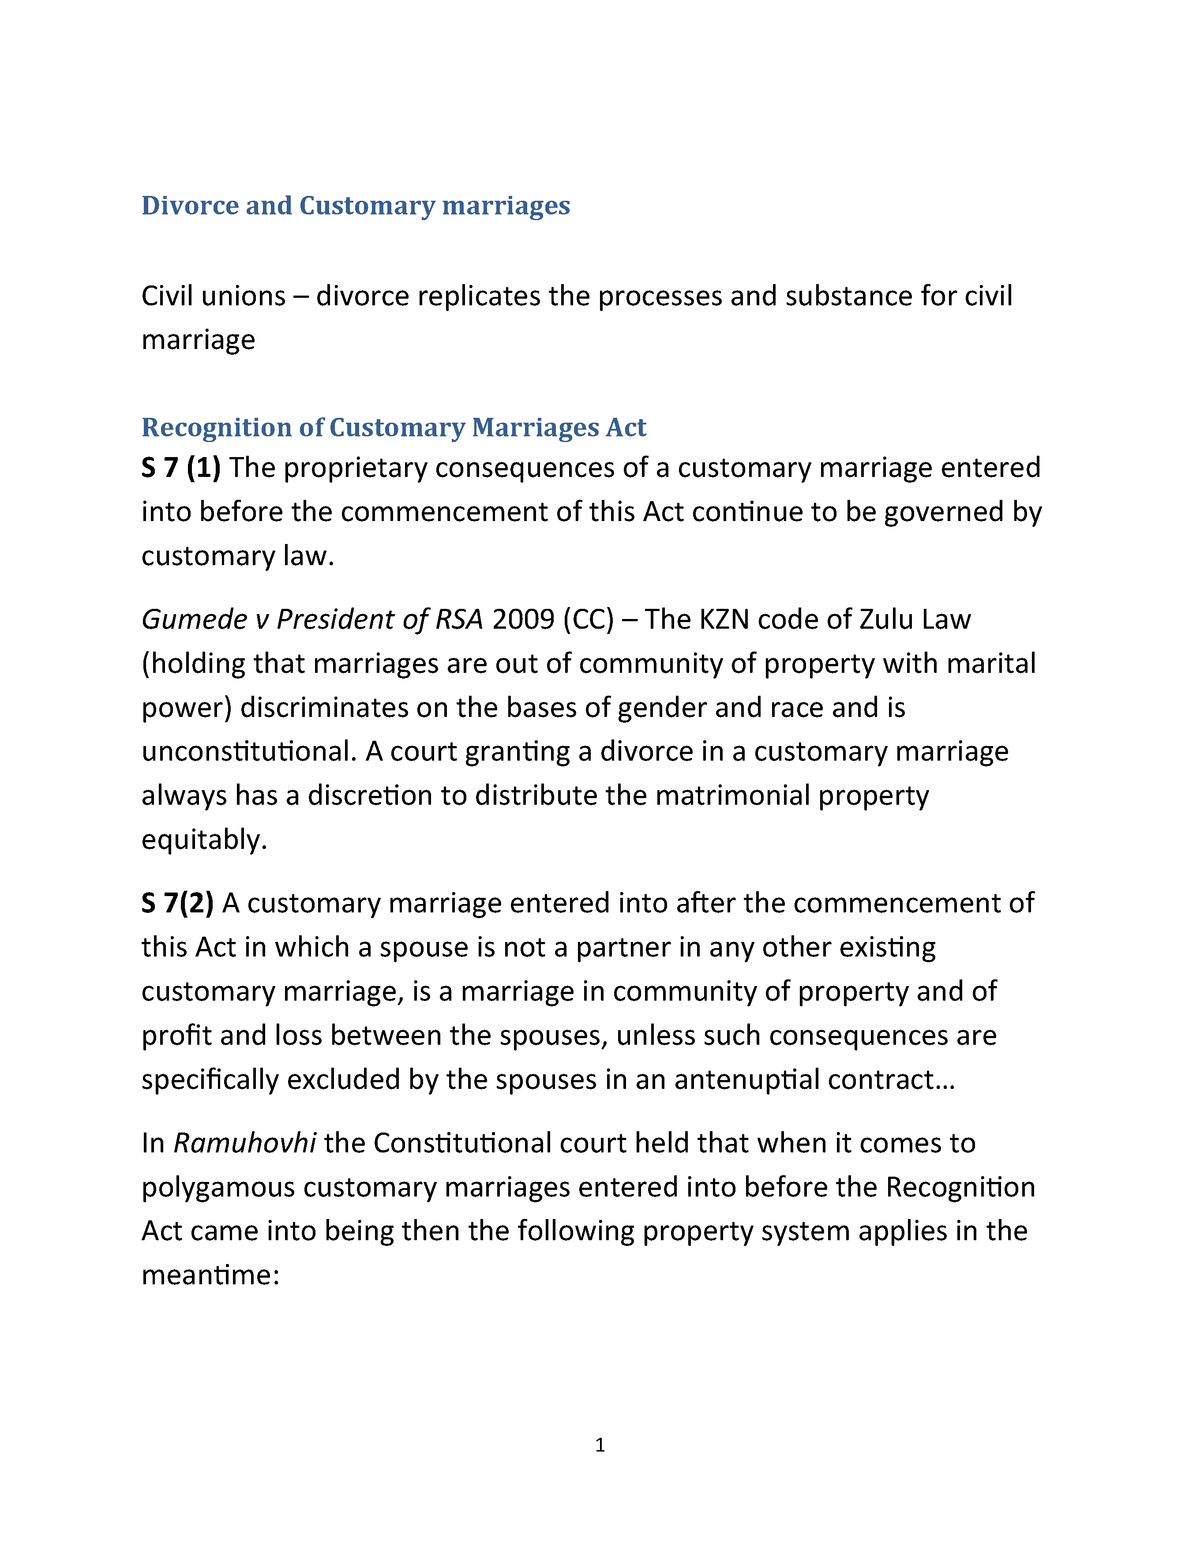 Divorce and Customary marriages.